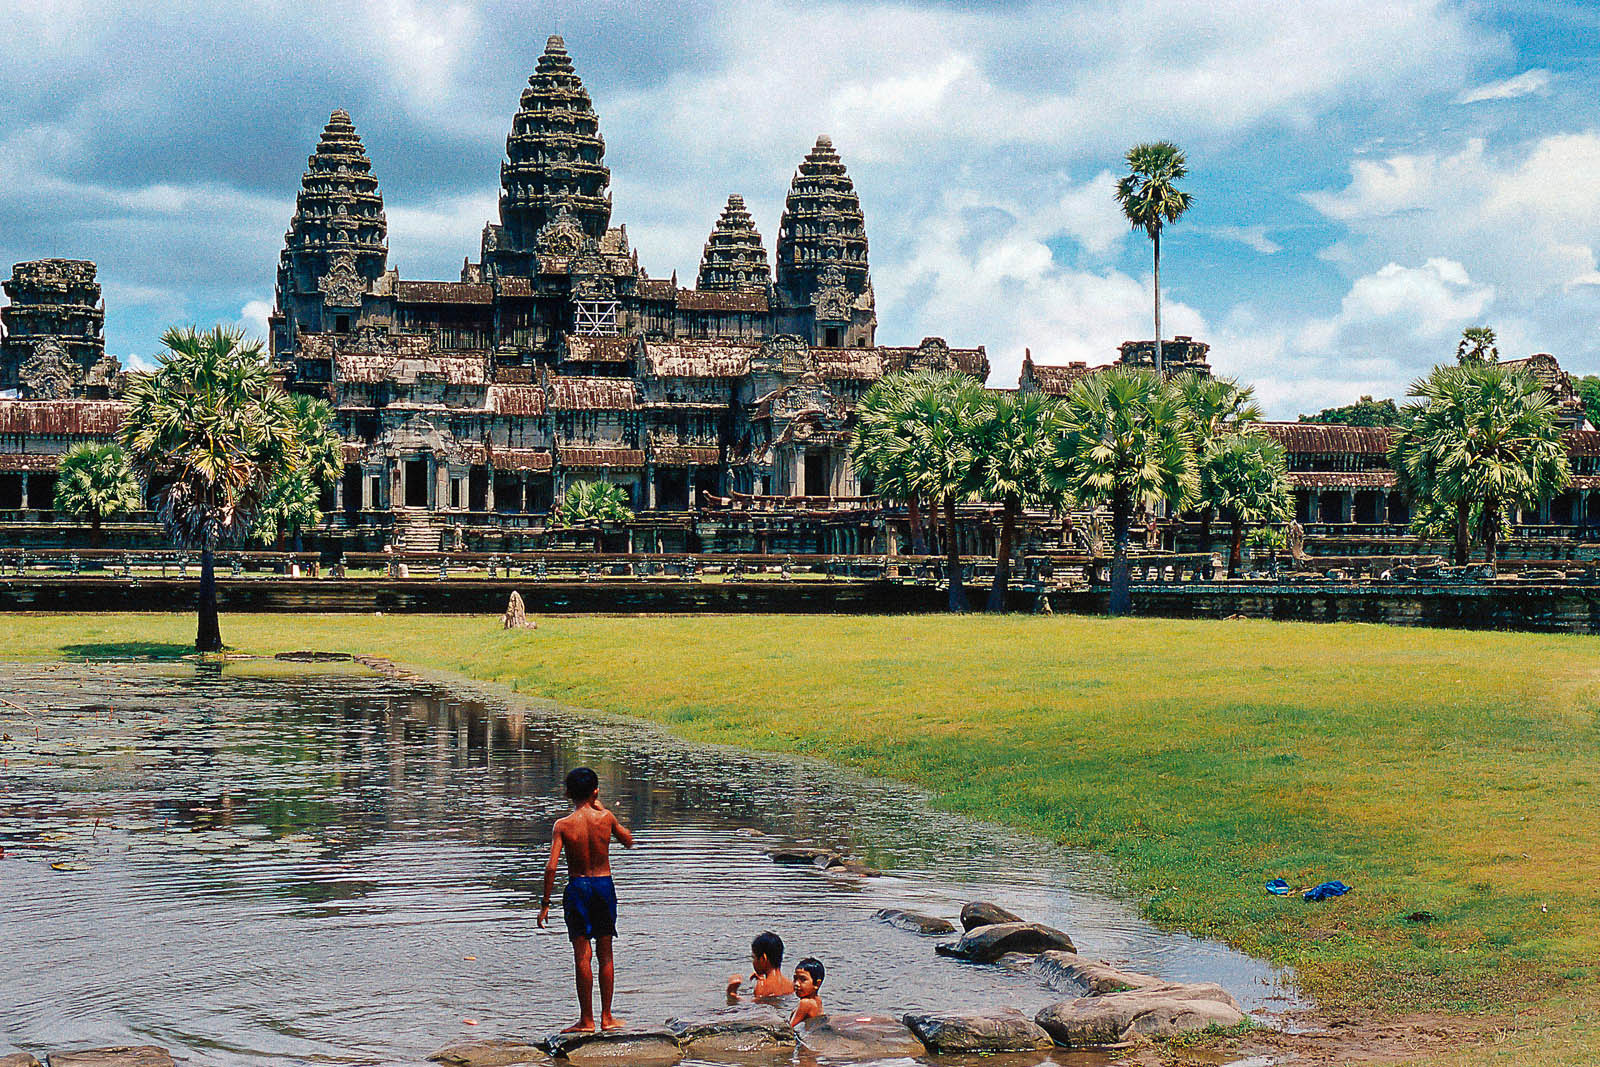 Ankor Wat Tour - Cambodia Travel Specialists